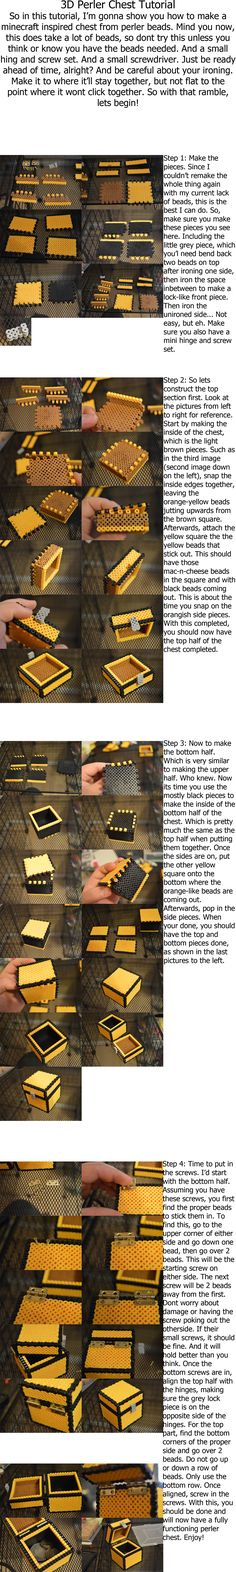 perler_chest_tutorial_by_ard95-d89lkn8.png 1.565 ×10.428 pixels